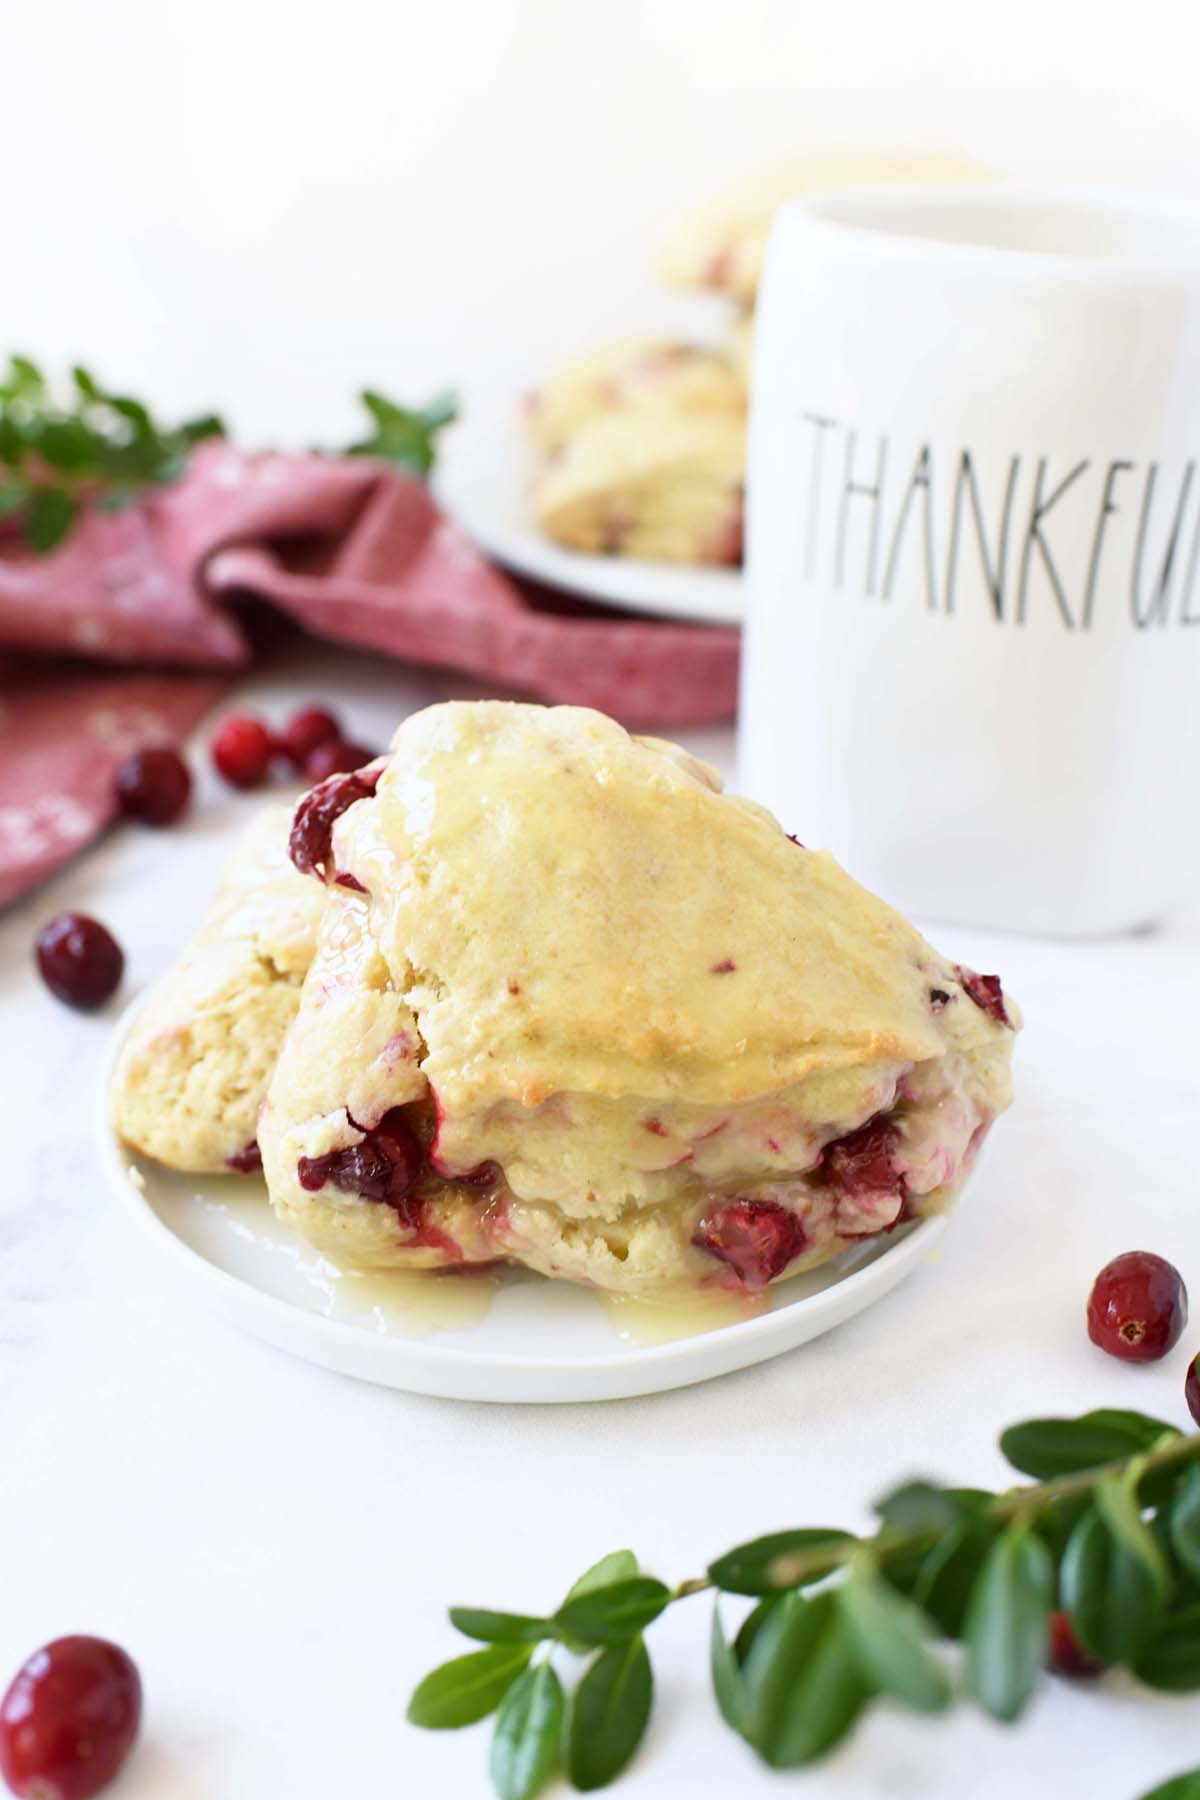 Glazed Cranberry Orange Scones on a plate with a thankful cup.